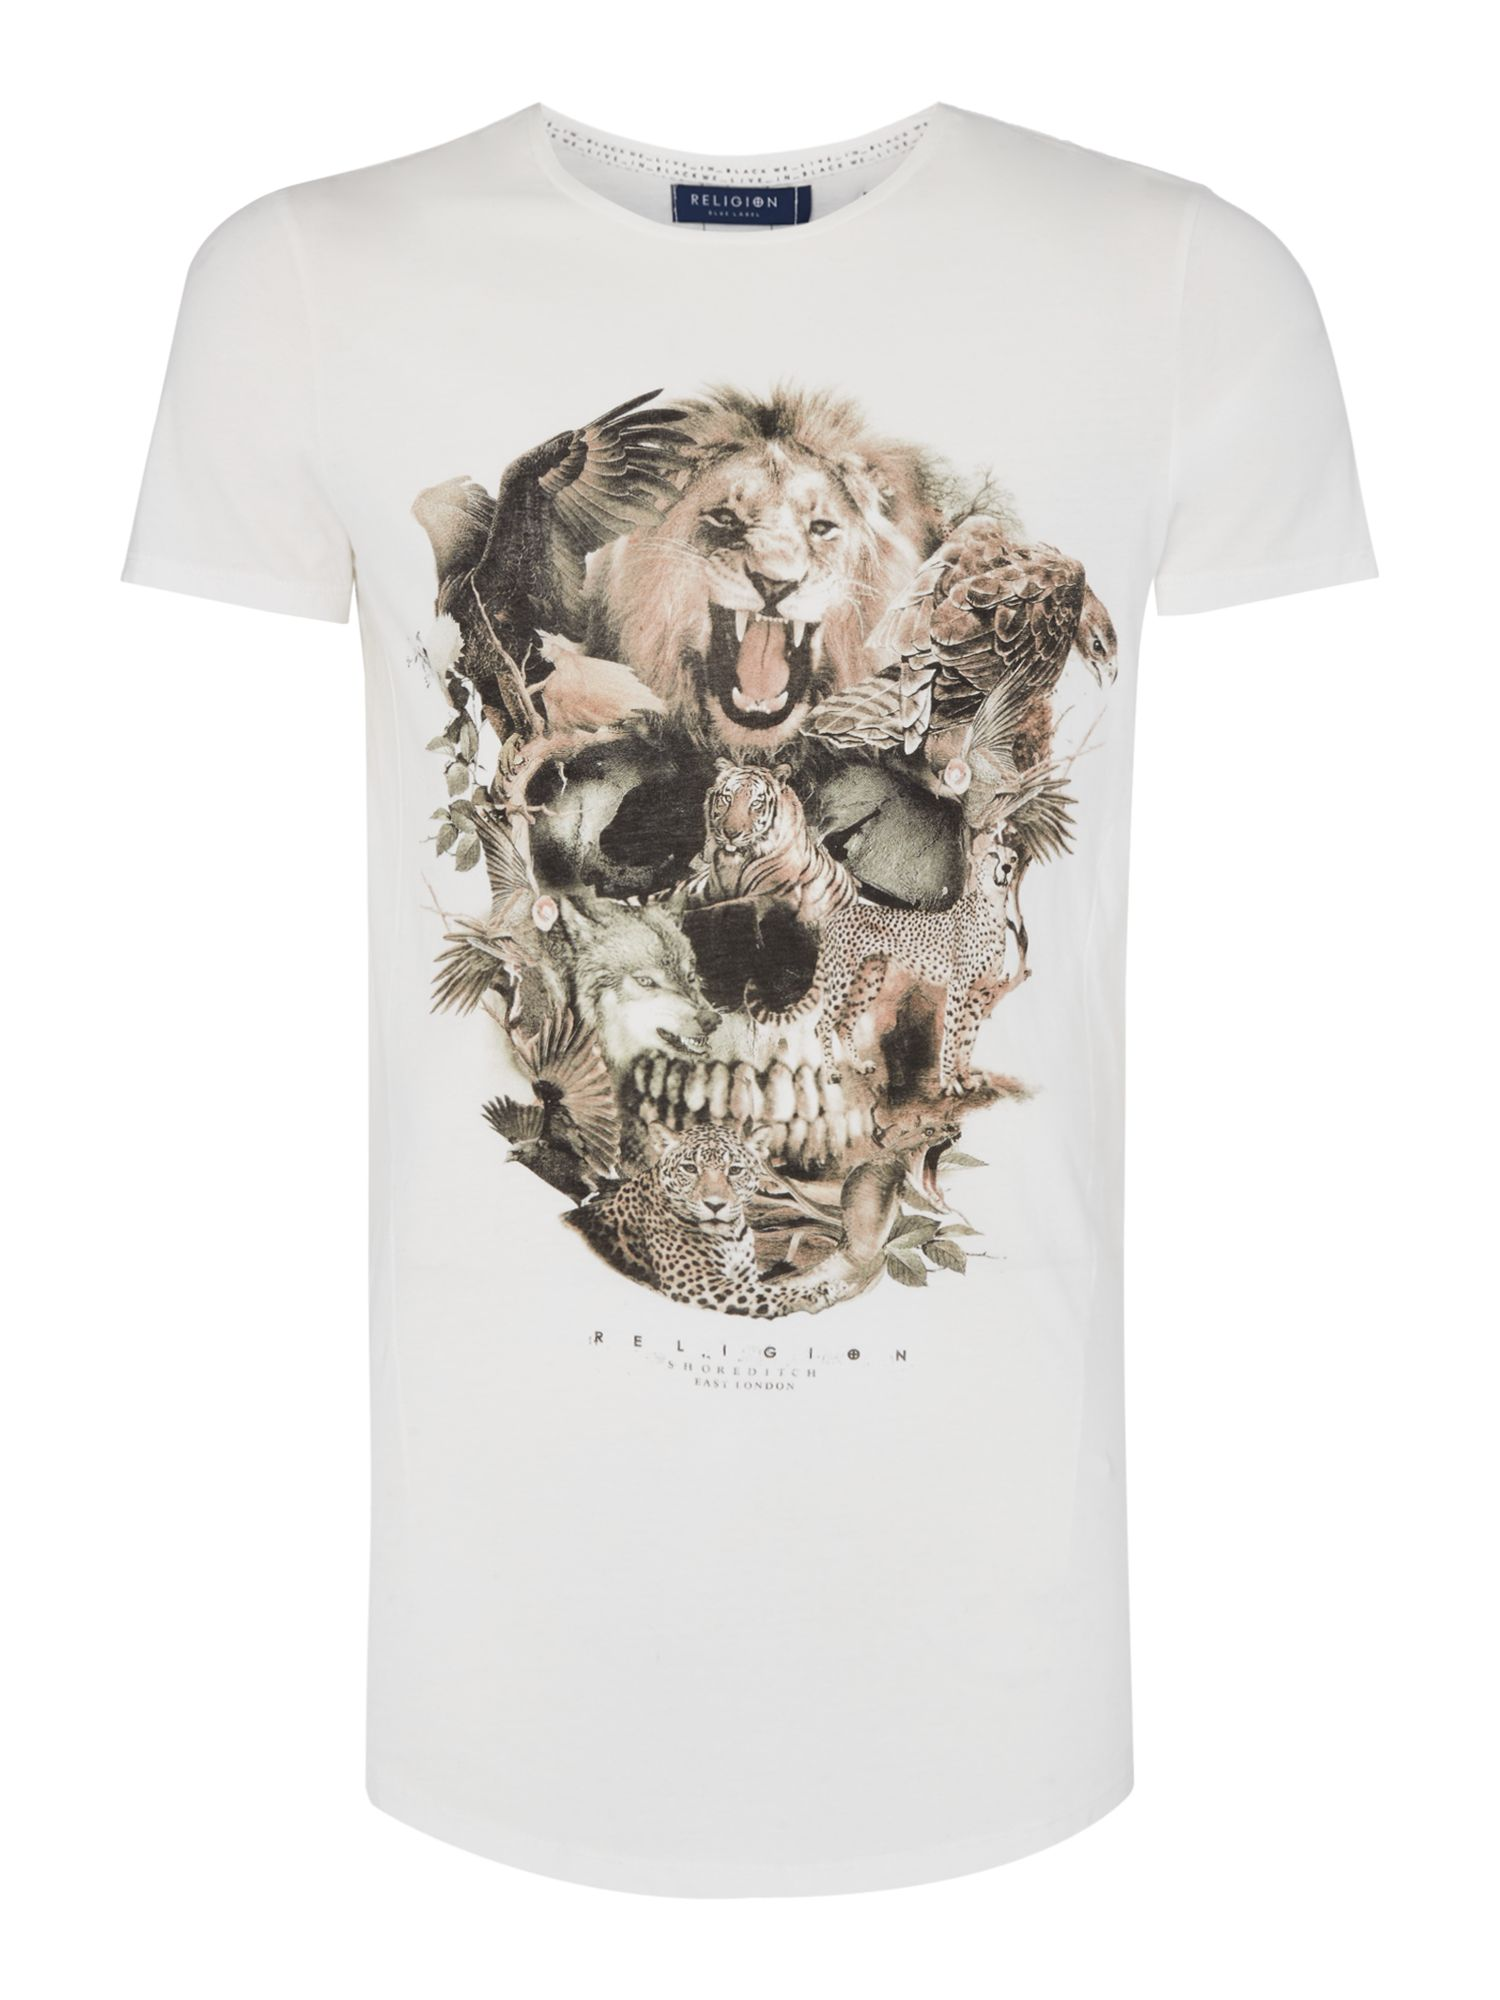 Mens Religion Animal Skull TShirt White